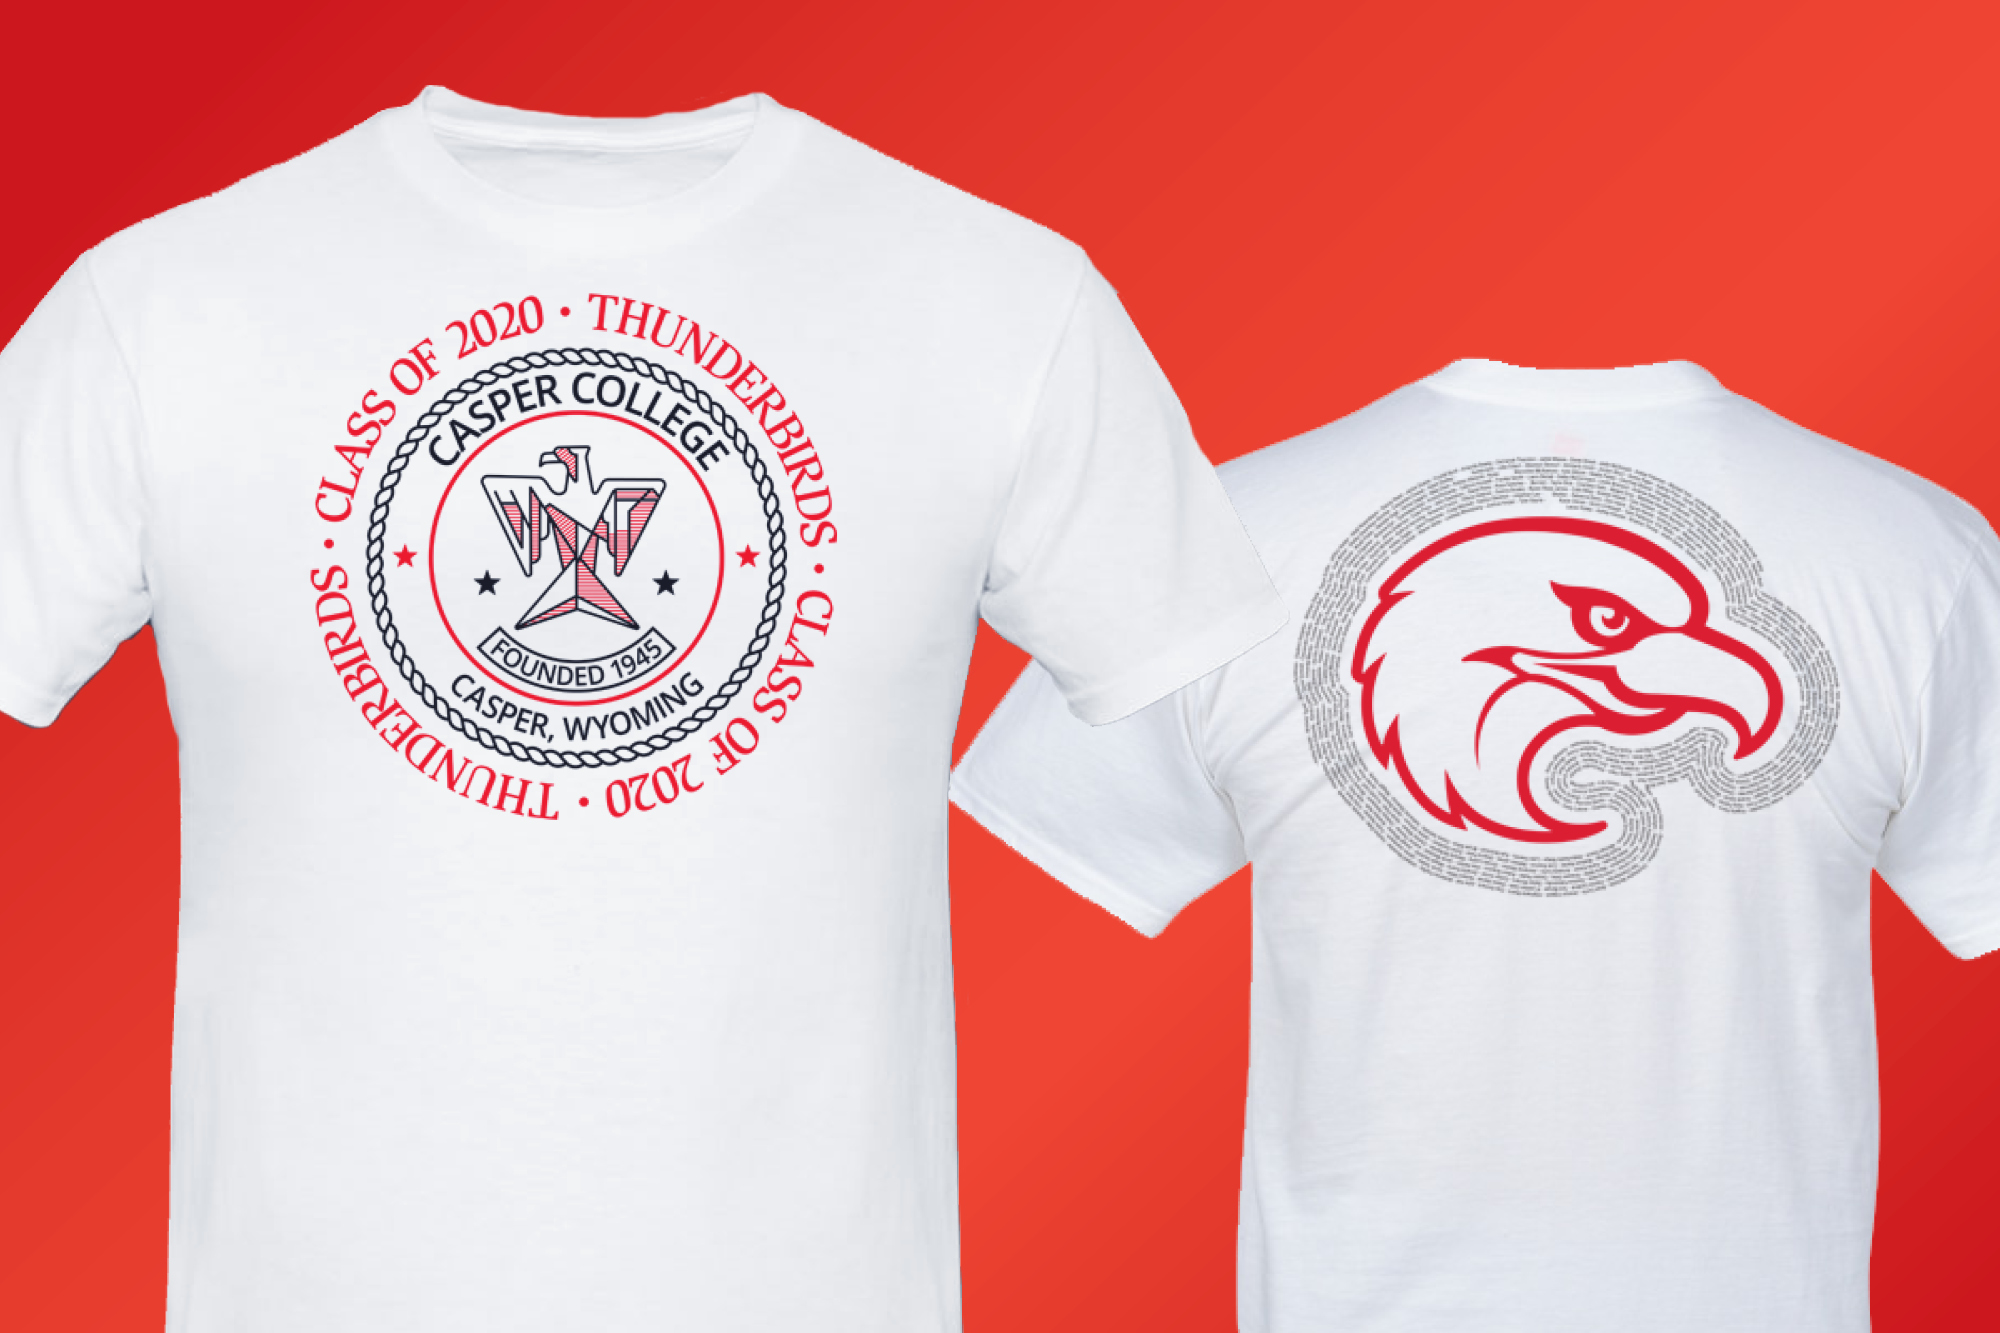 Photo of Casper College Graduation T-shirts.